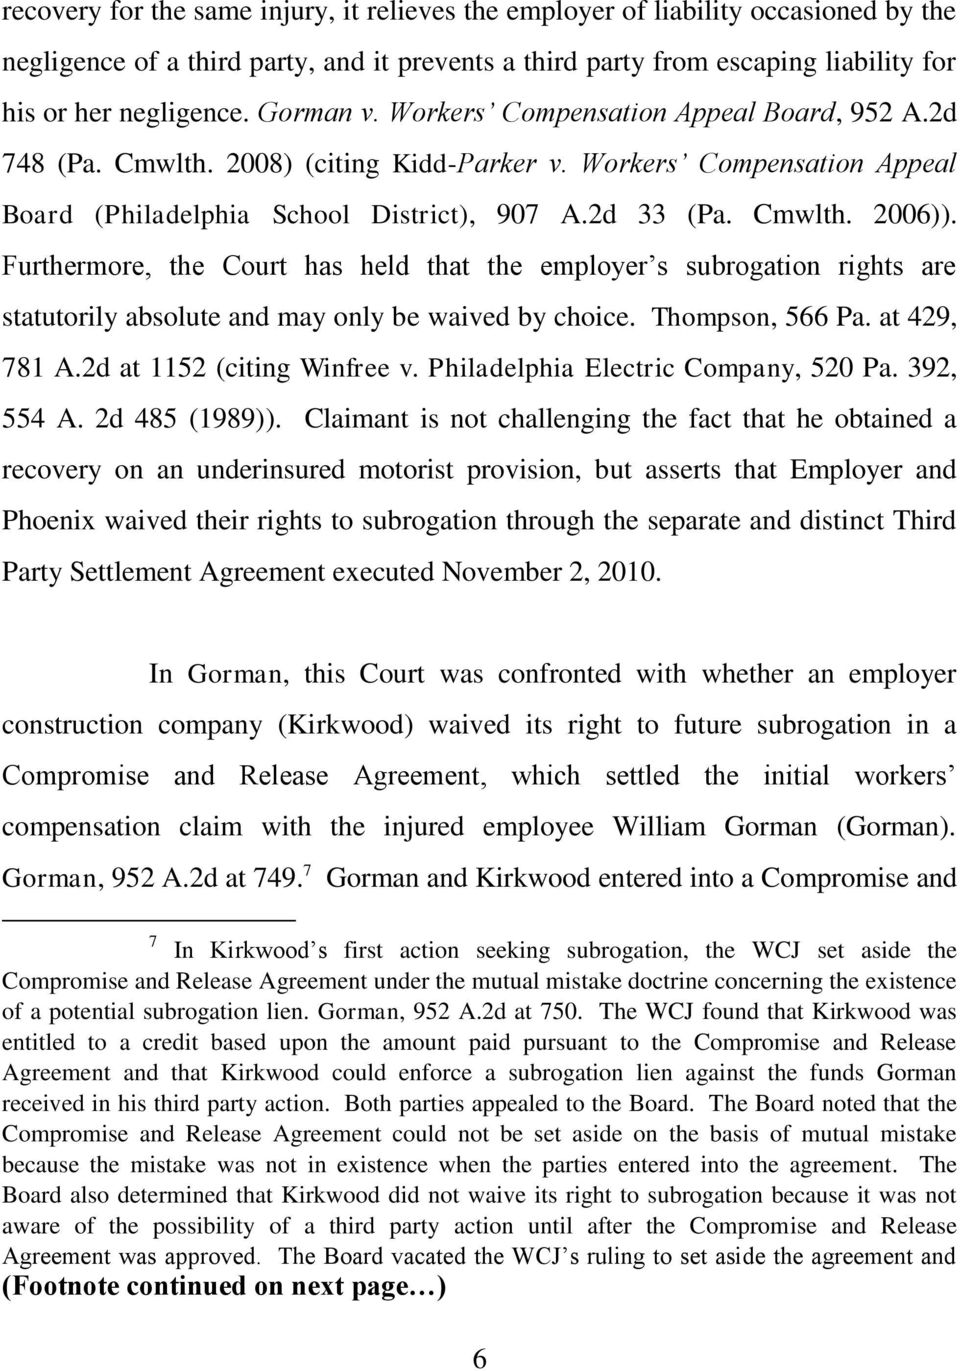 Furthermore, the Court has held that the employer s subrogation rights are statutorily absolute and may only be waived by choice. Thompson, 566 Pa. at 429, 781 A.2d at 1152 (citing Winfree v.